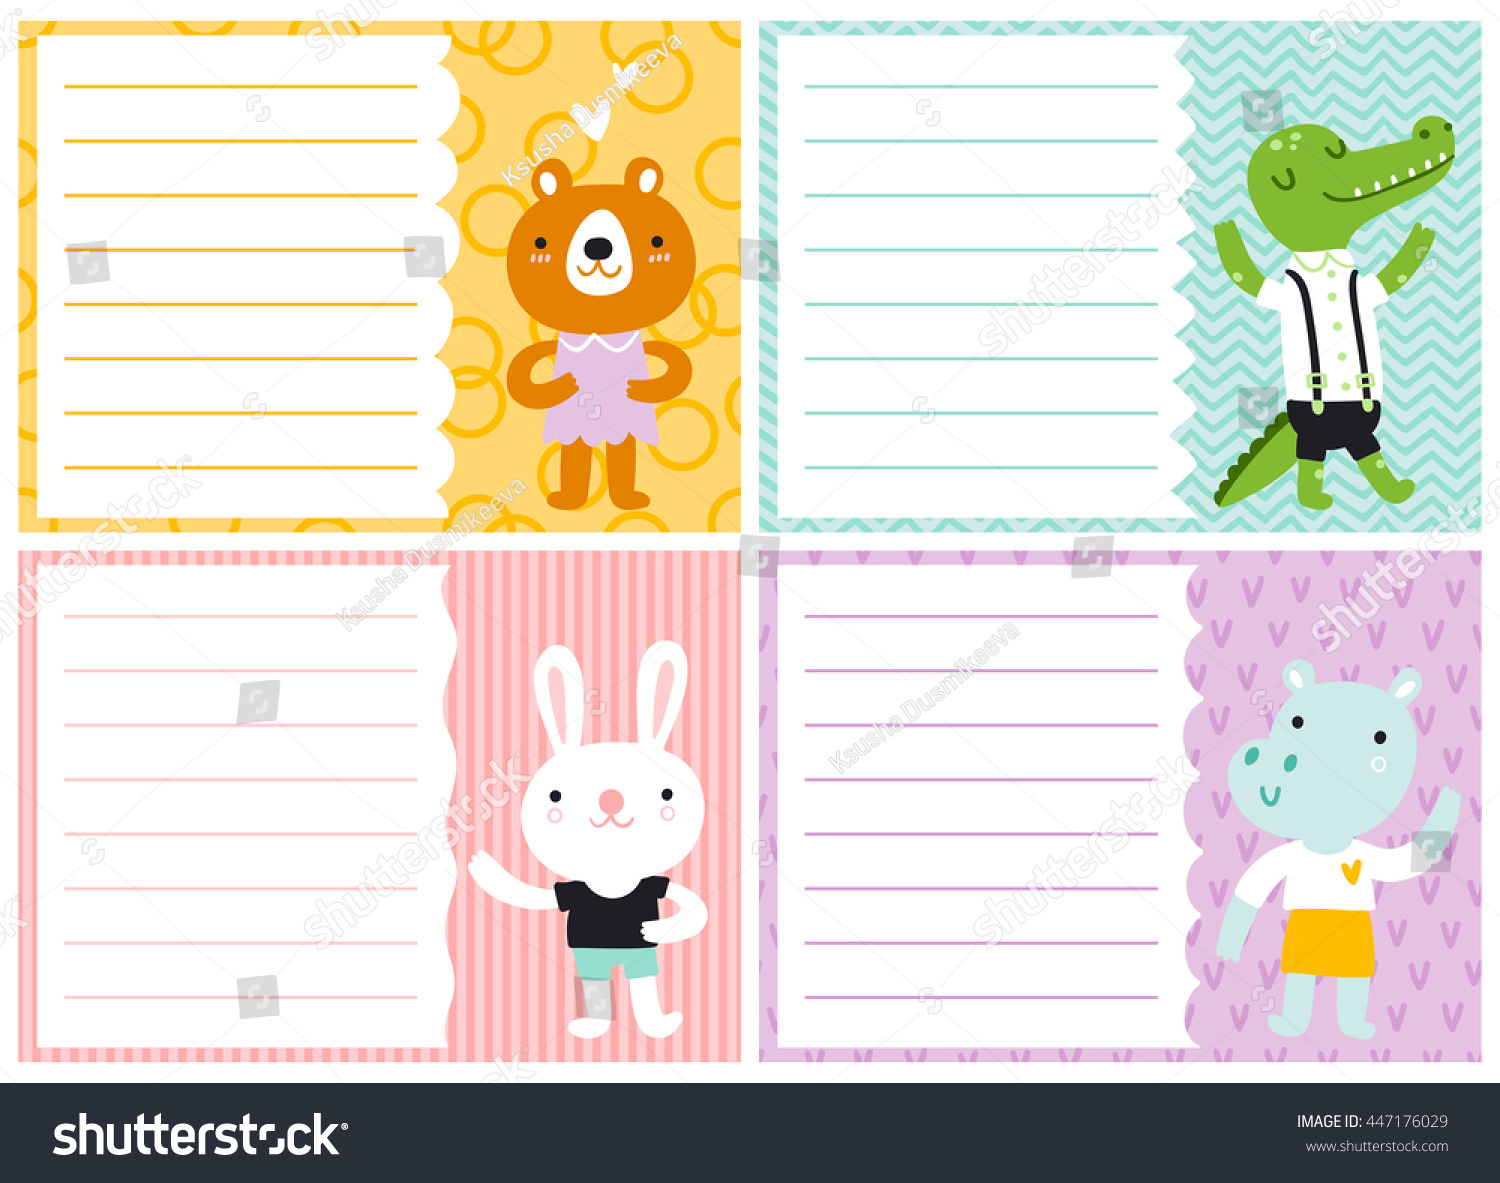 Cute Note Cards Kids Vector Templates Vector 447176029 – Note Card Template